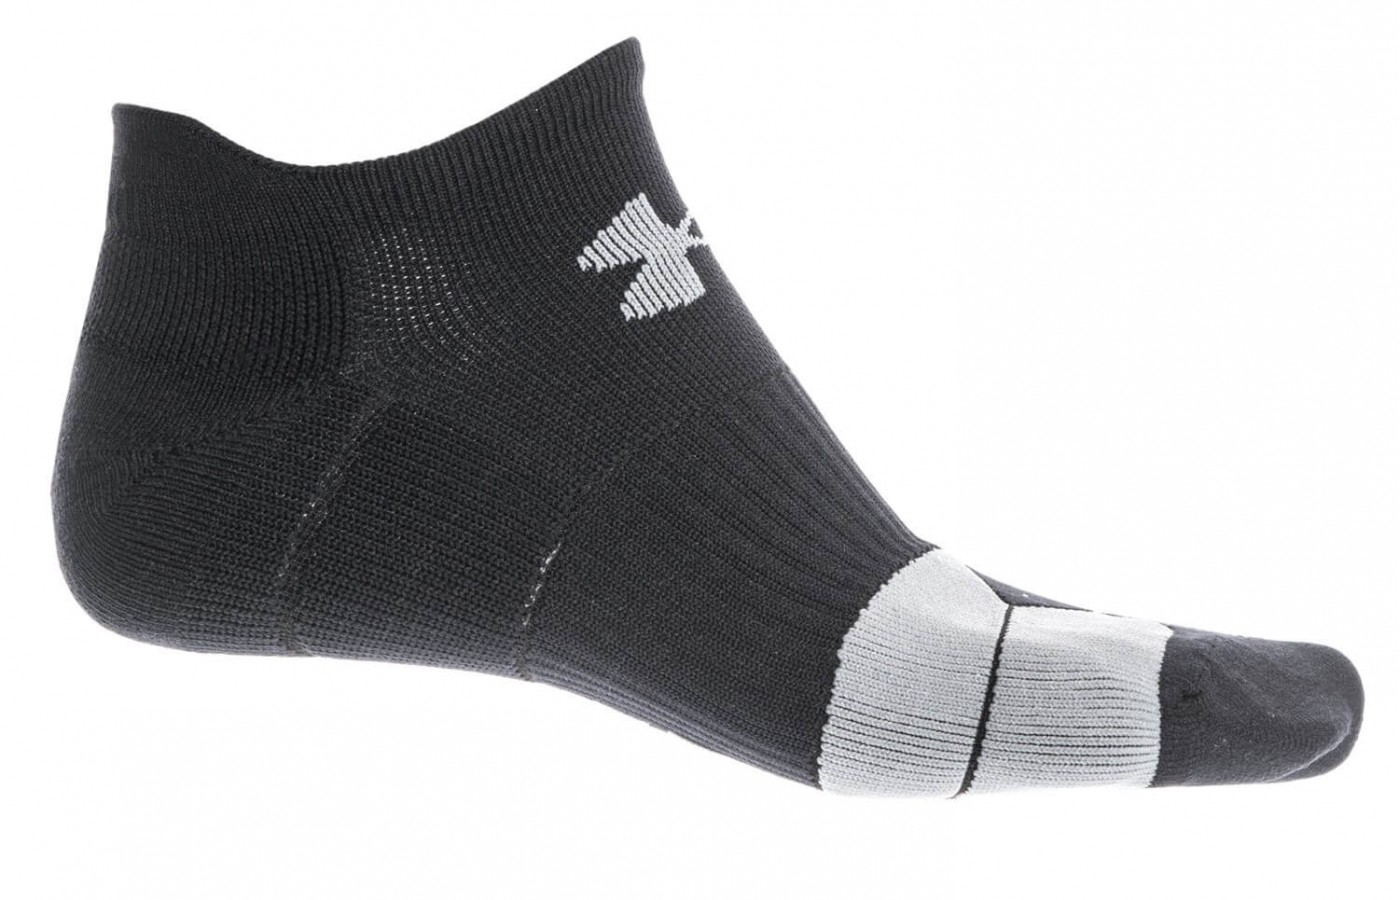 Under Armour Run Socks Angled View